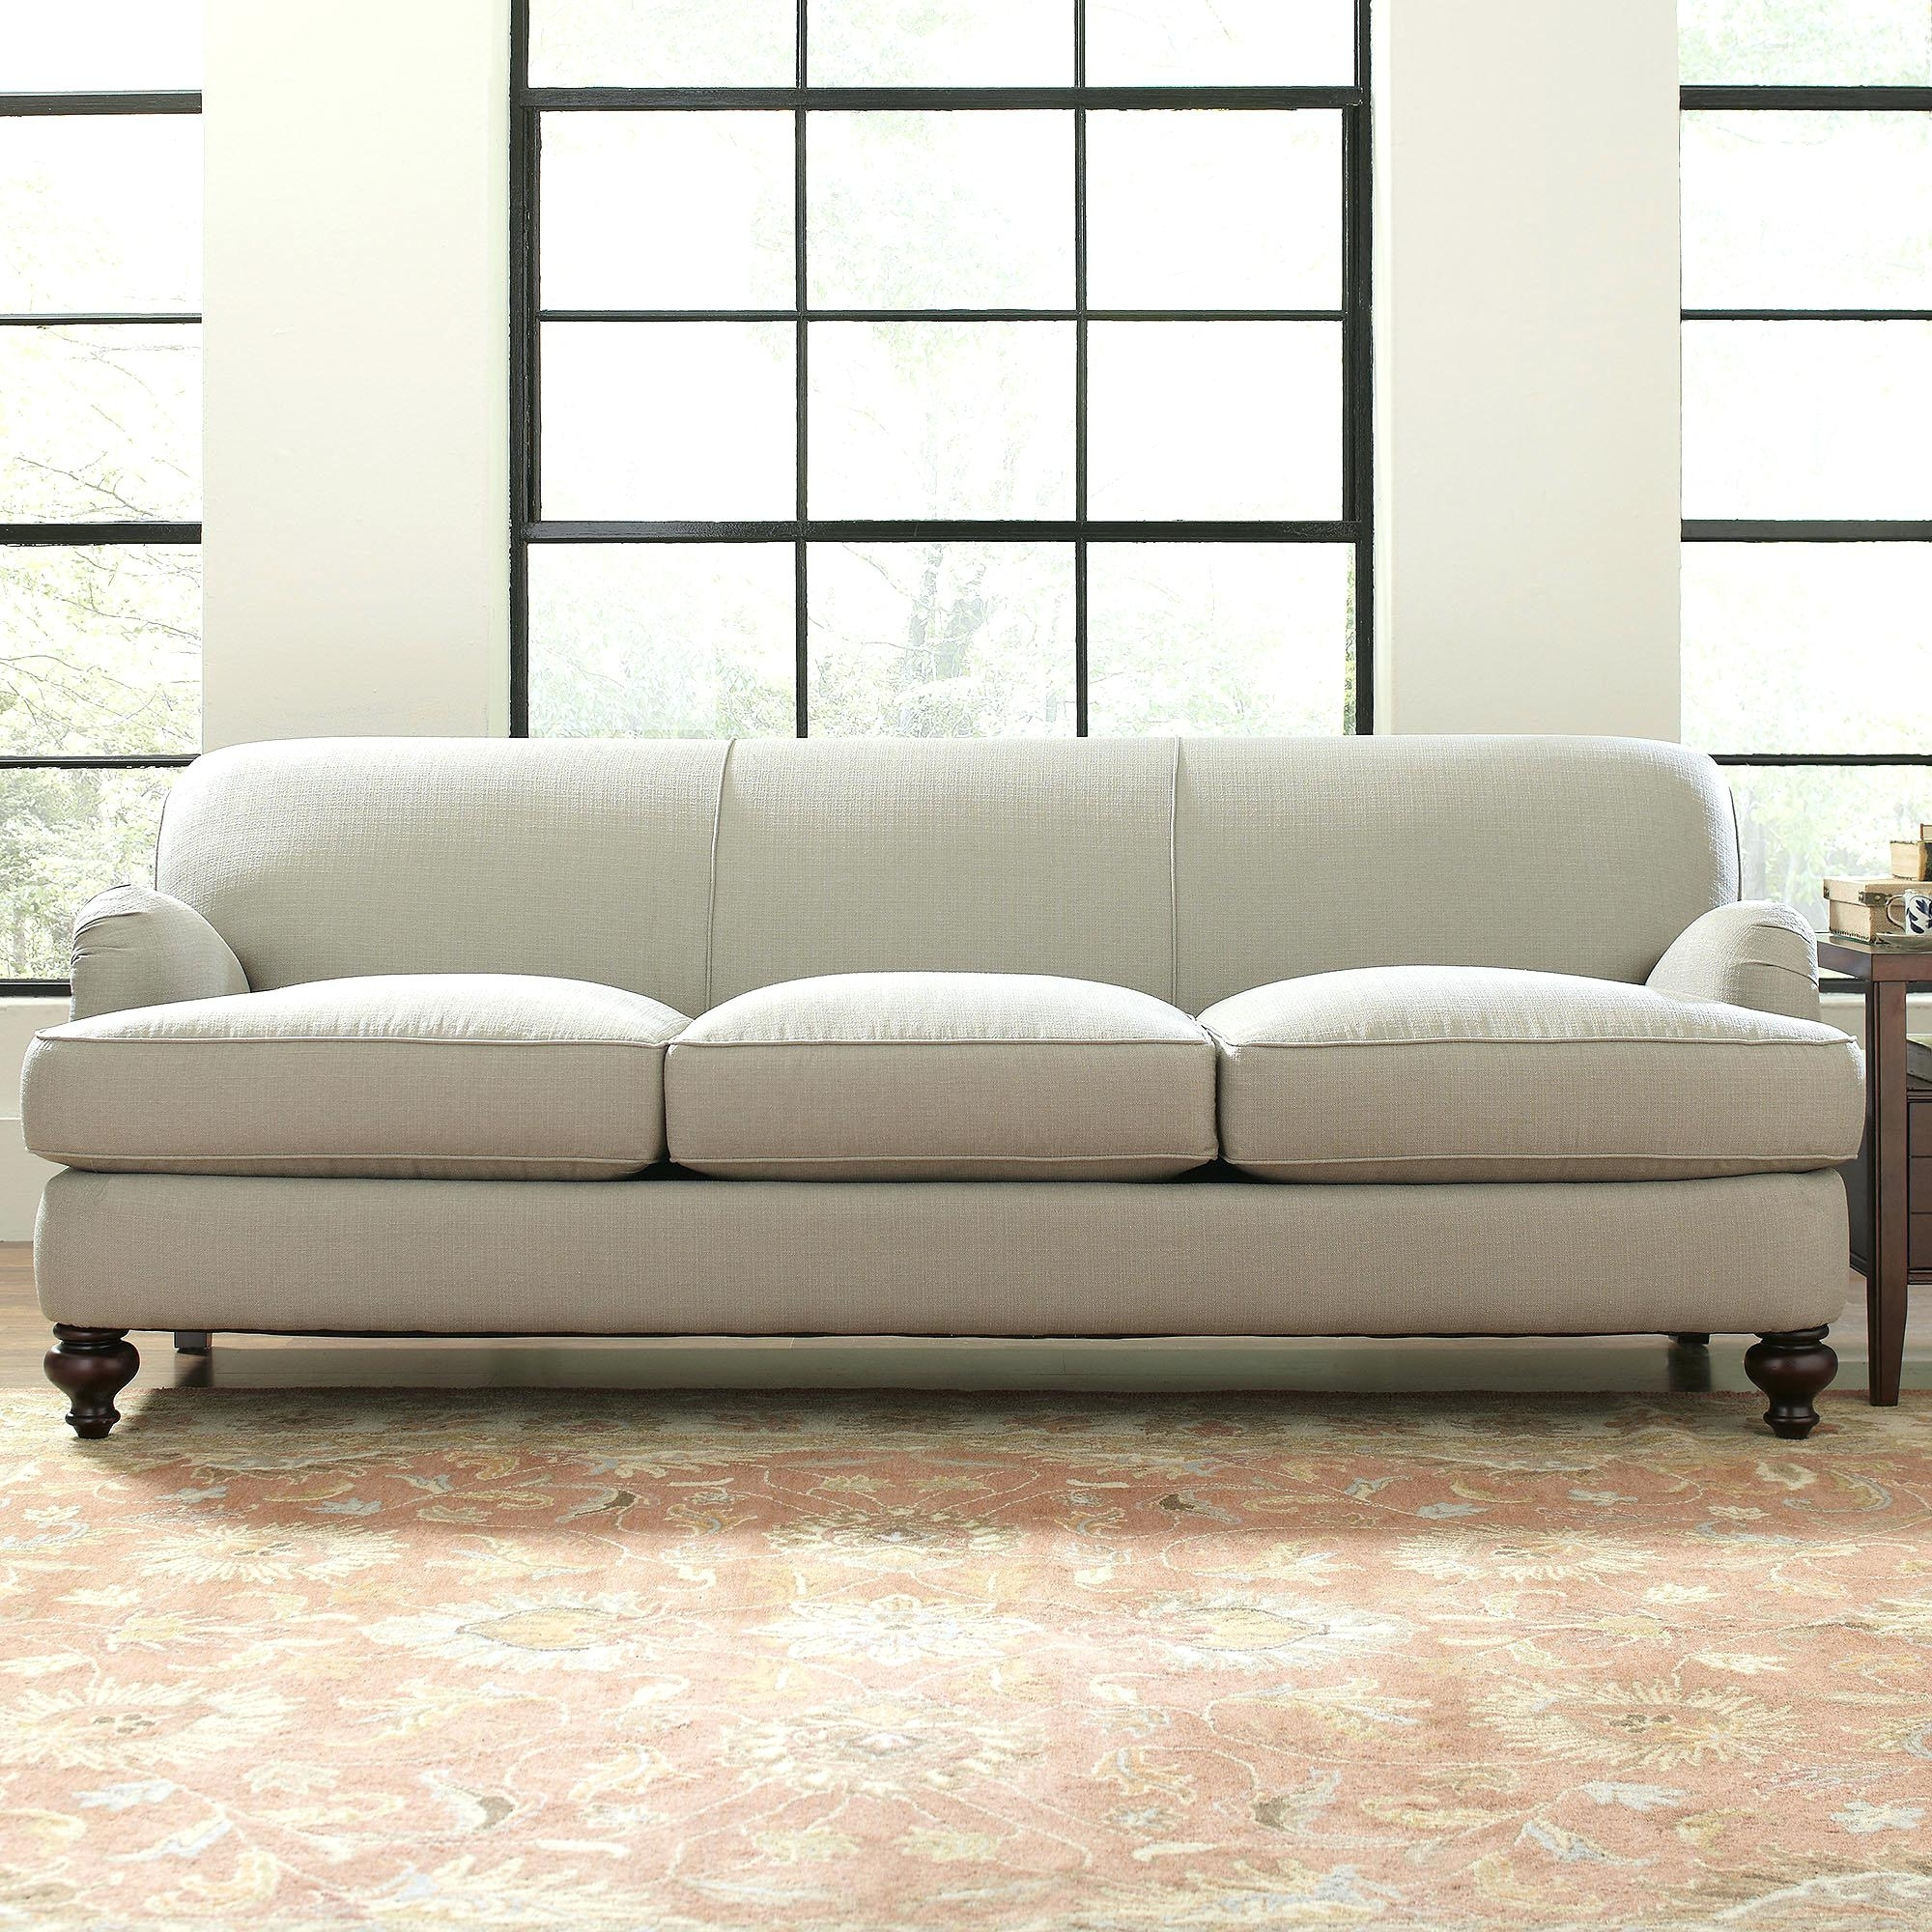 Durham Furniture Stores Raleigh Region Ontario Used With Well Liked Durham Region Sectional Sofas (View 7 of 20)